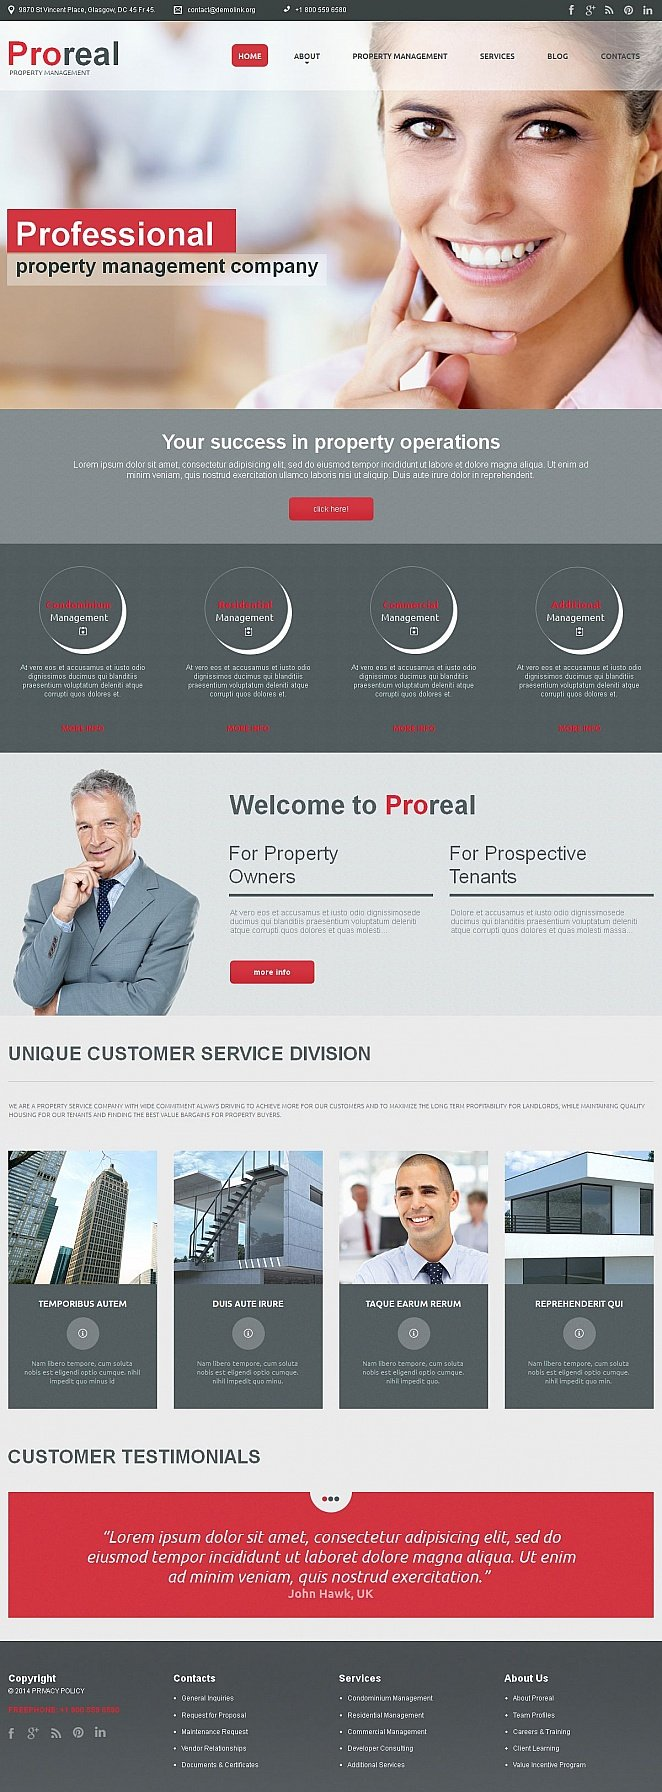 Property Management Website Template - image